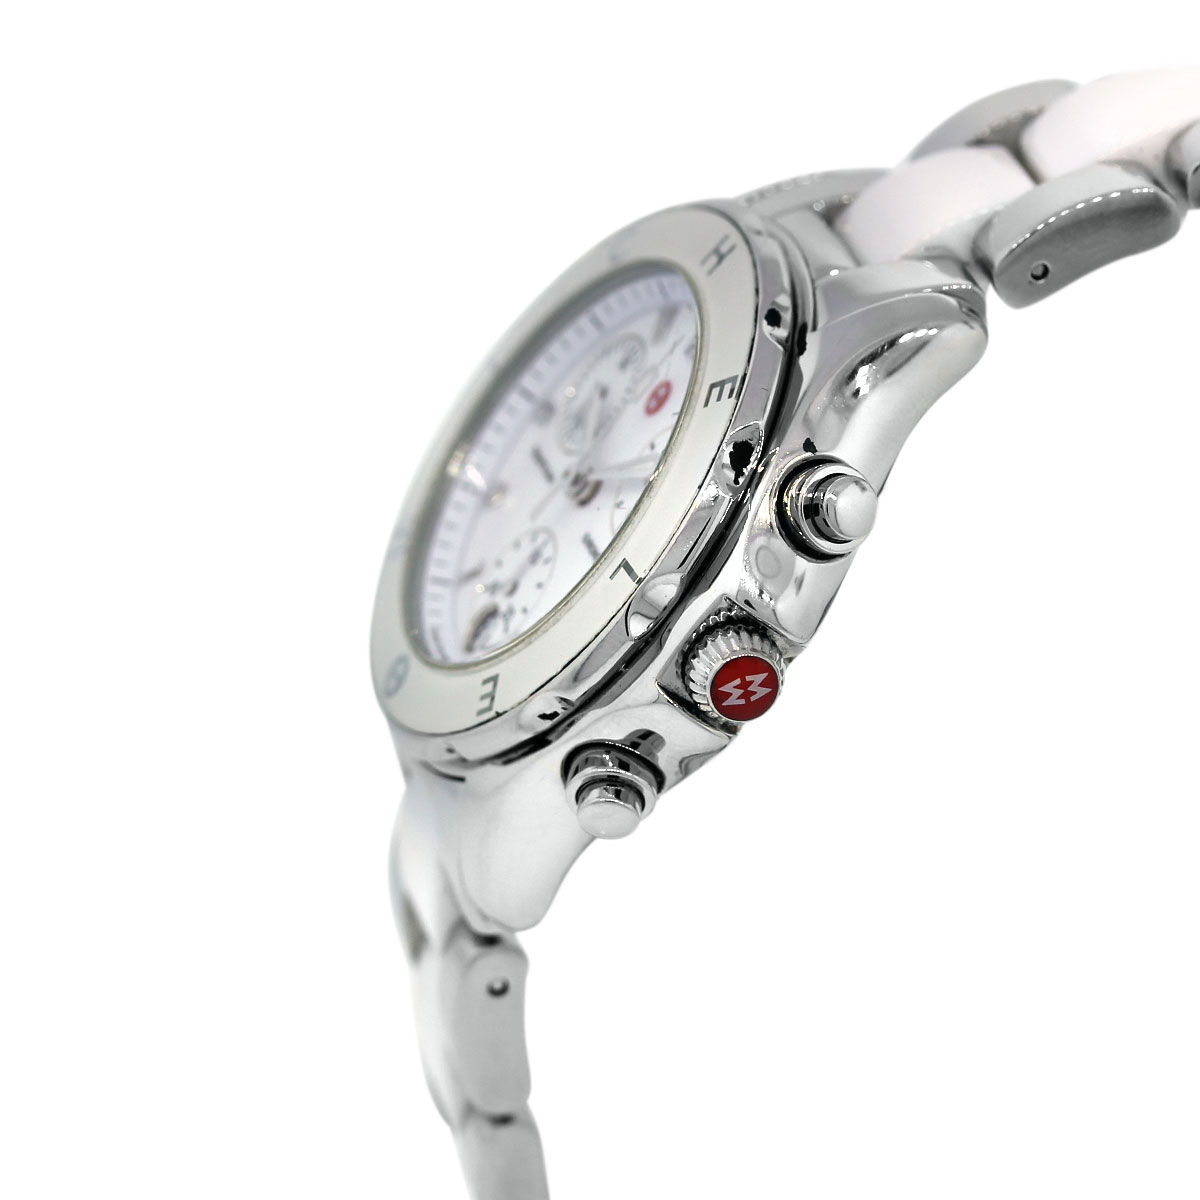 Stainless Steel Ceramic and Enamel Watch